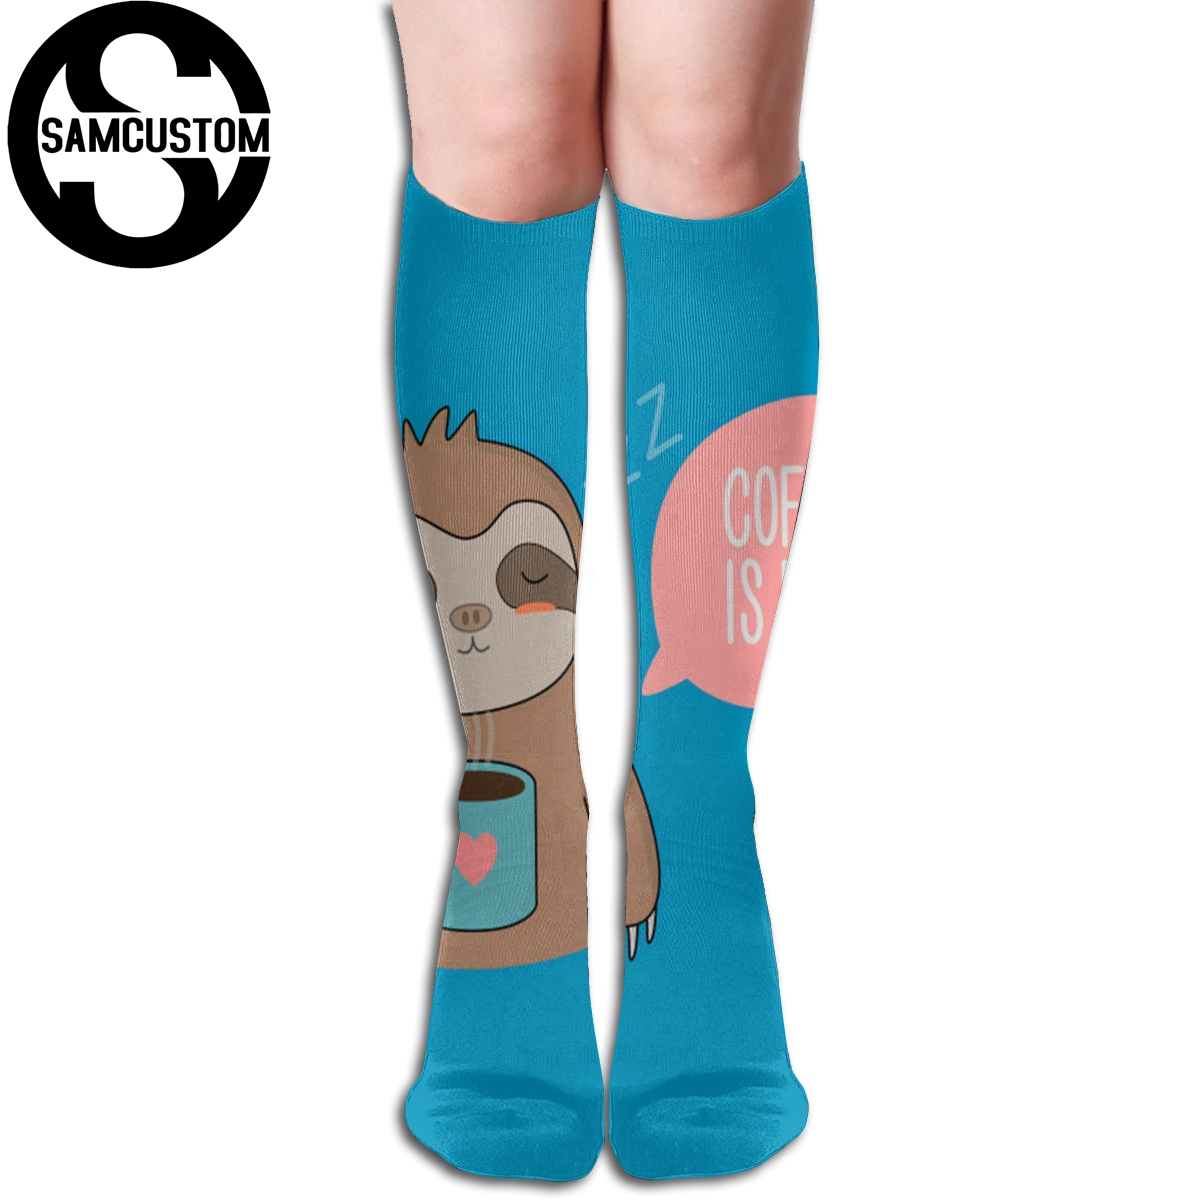 SAMCUSTOM Personalized custom sloth 3D printing female <font><b>kawaii</b></font> <font><b>knee</b></font> <font><b>socks</b></font> fashion girl cute stockings image